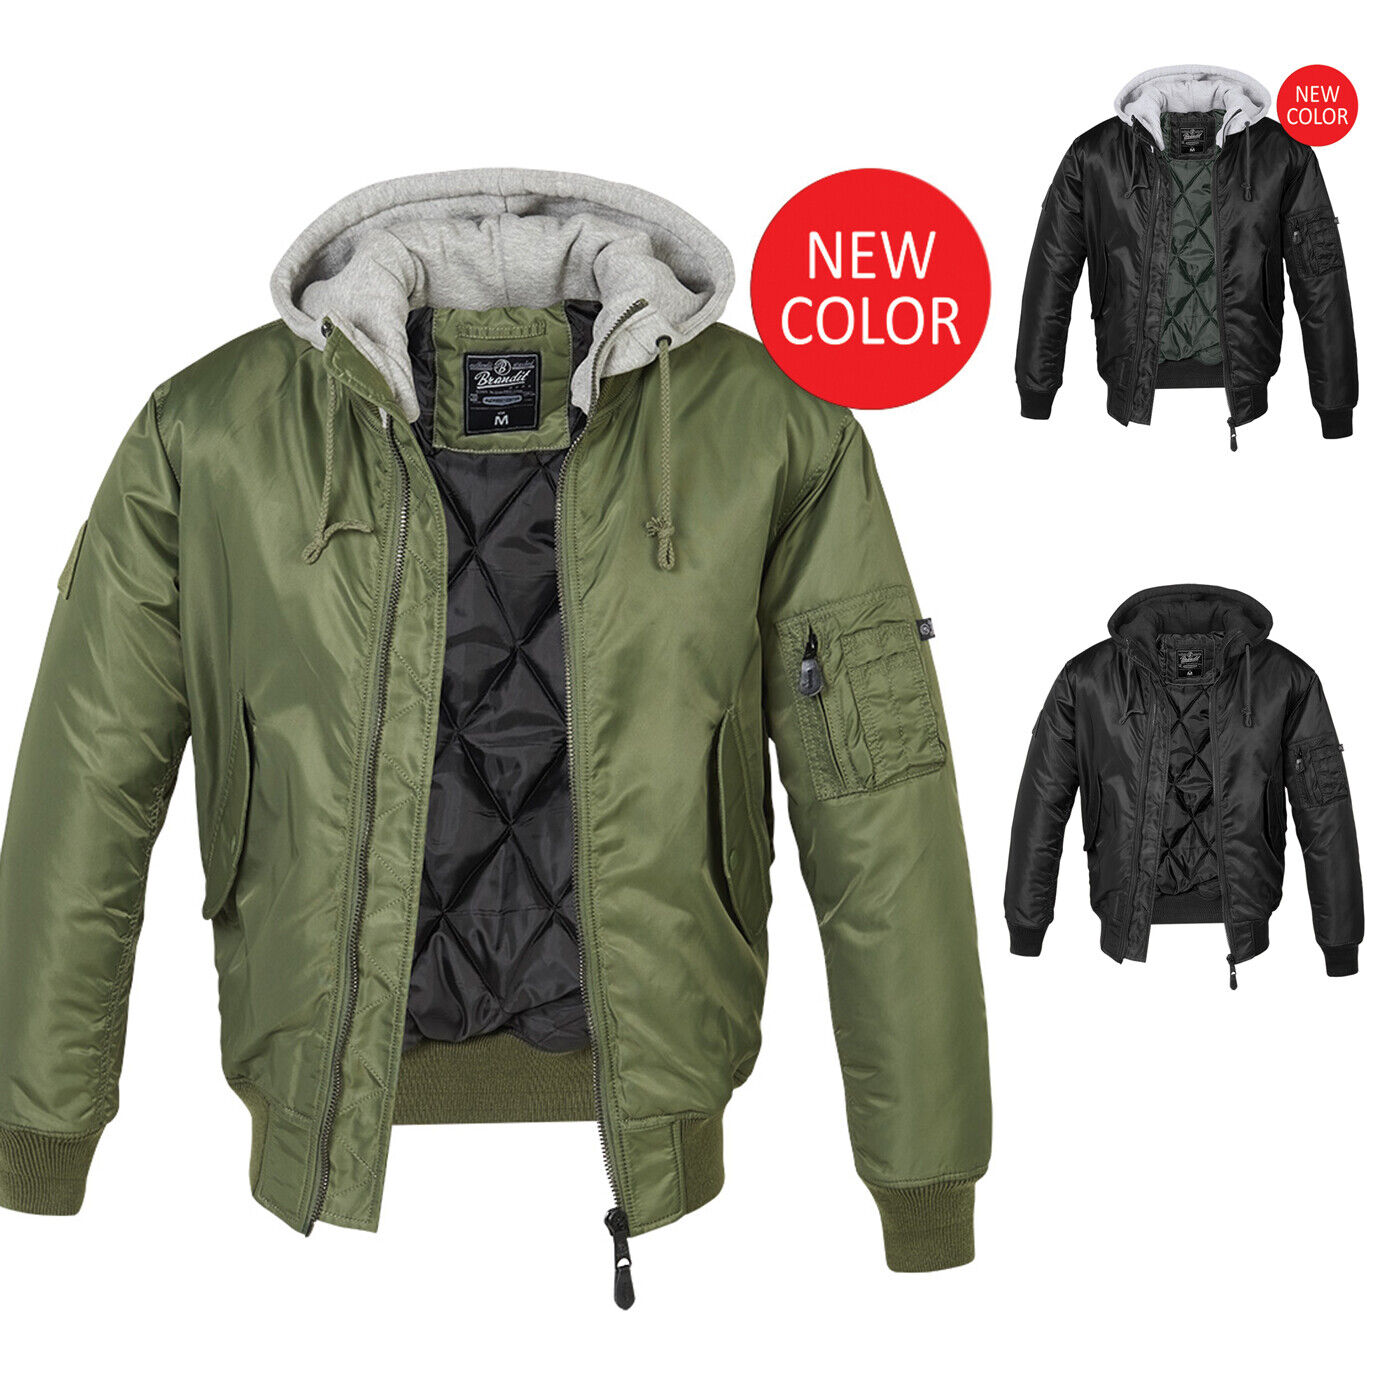 3608adef5 Details about Brandit Ma1 Sweat Hooded Bomber Jacket with Hoodie Hooded  Jacket Blouson